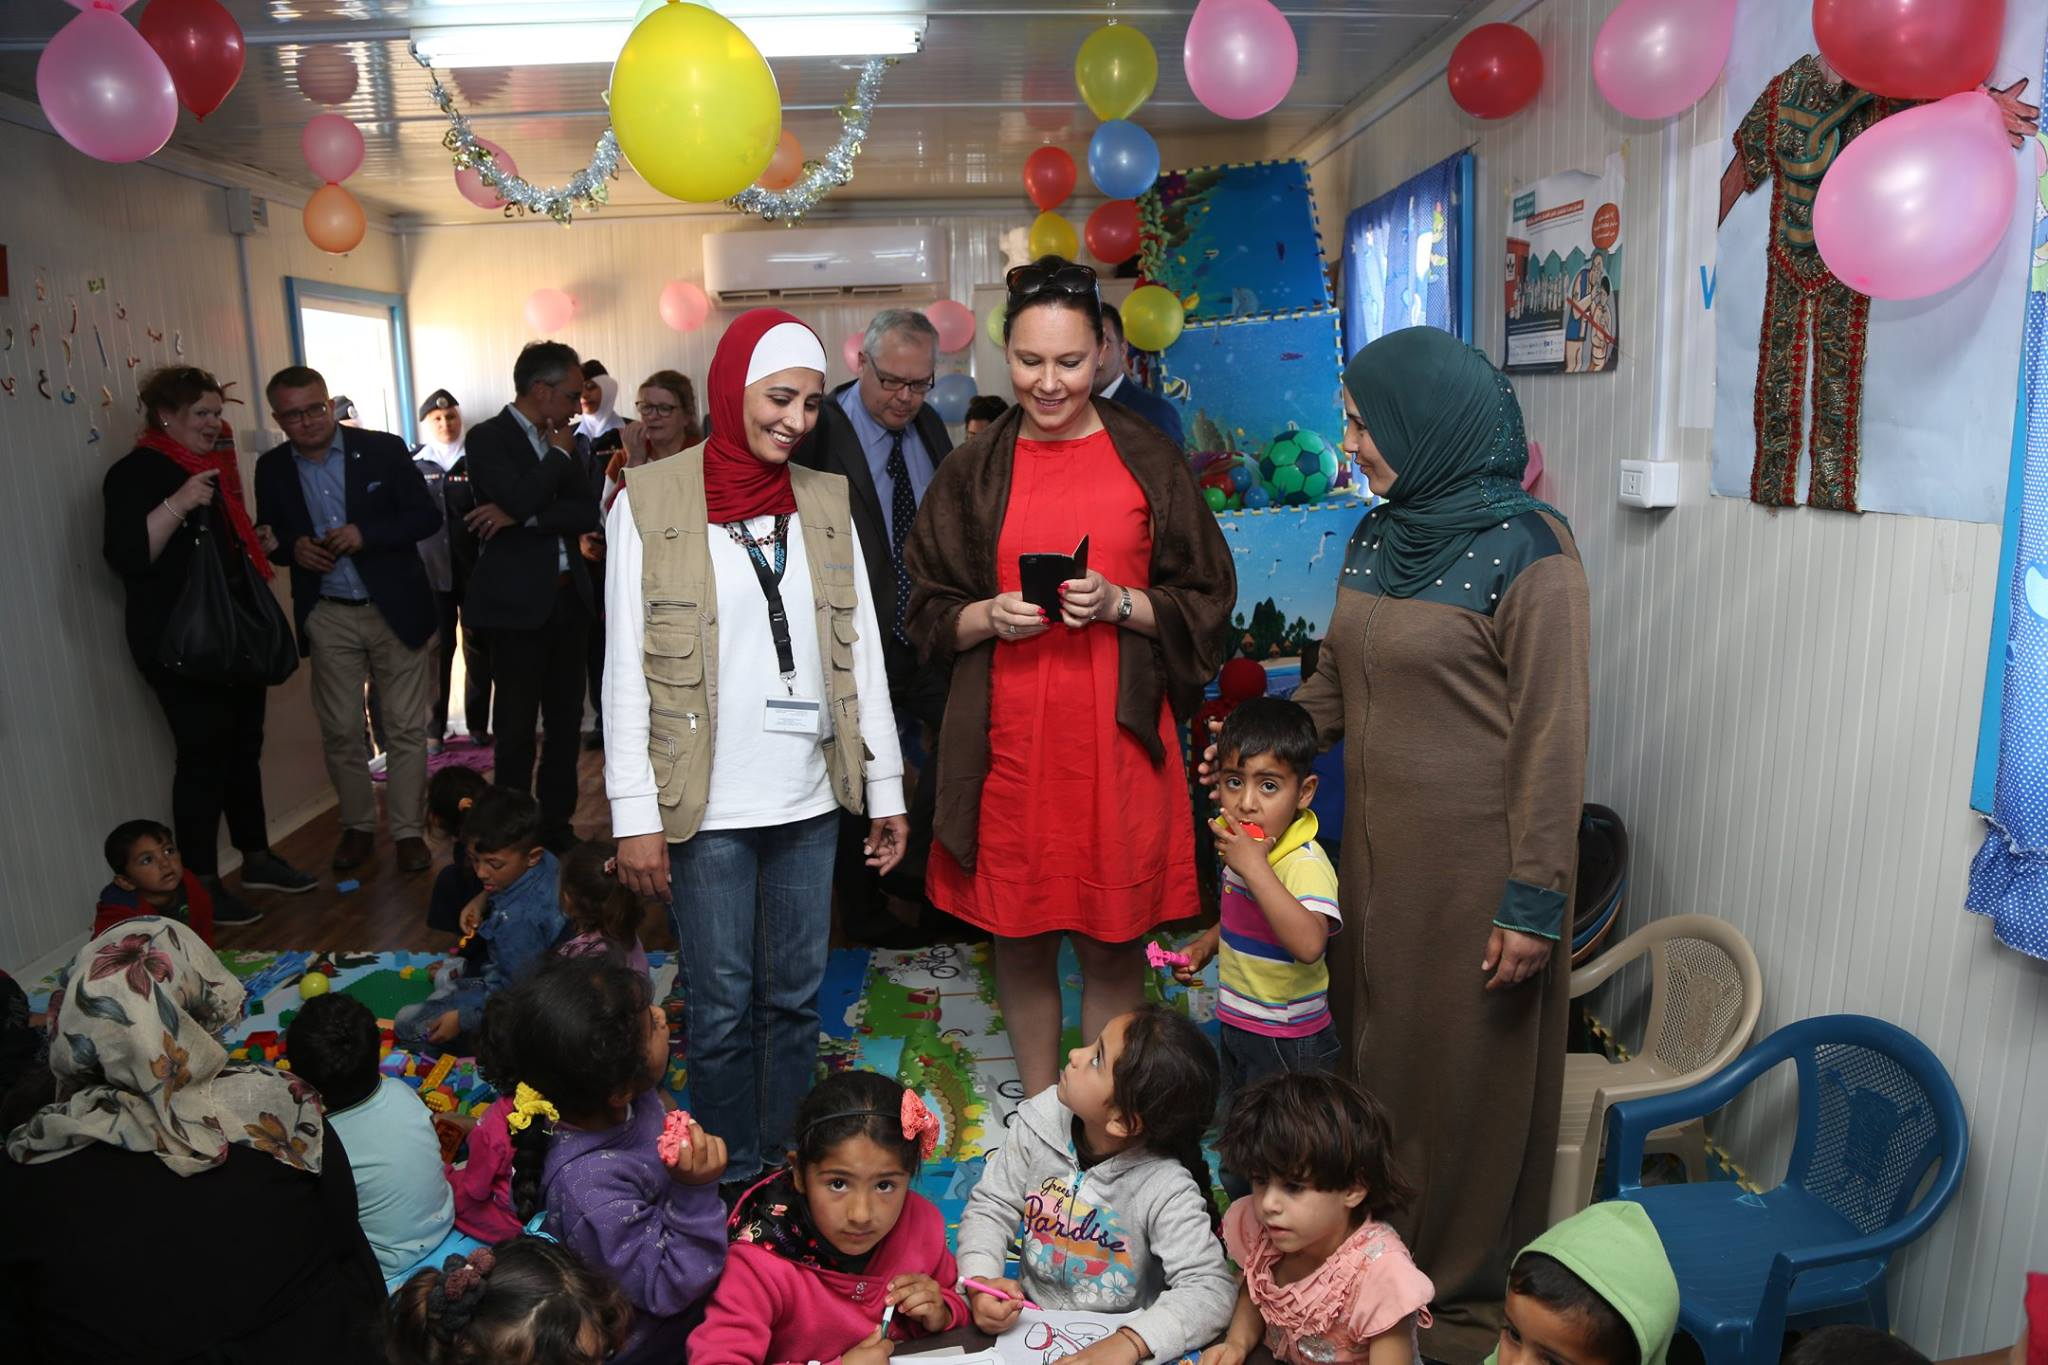 Mrs. Virolainen had the chance to greet women within each of the sectors available to the women and girls livelihood centre including the childcare and nursery facilities. Photo source: UN Women/ Ghaith Al Bahri